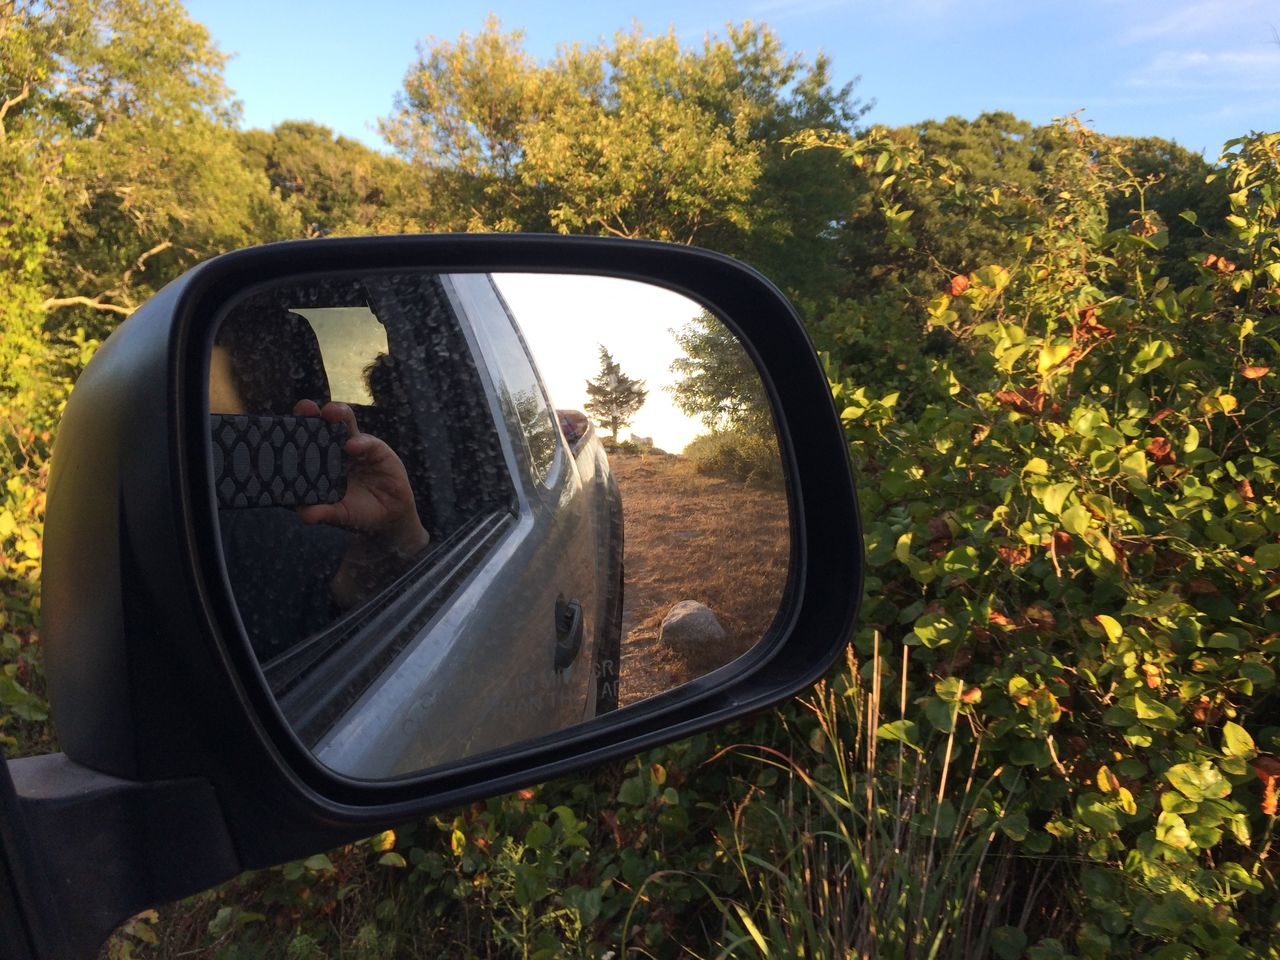 REFLECTION OF CAR ON SIDE-VIEW MIRROR AGAINST TREES